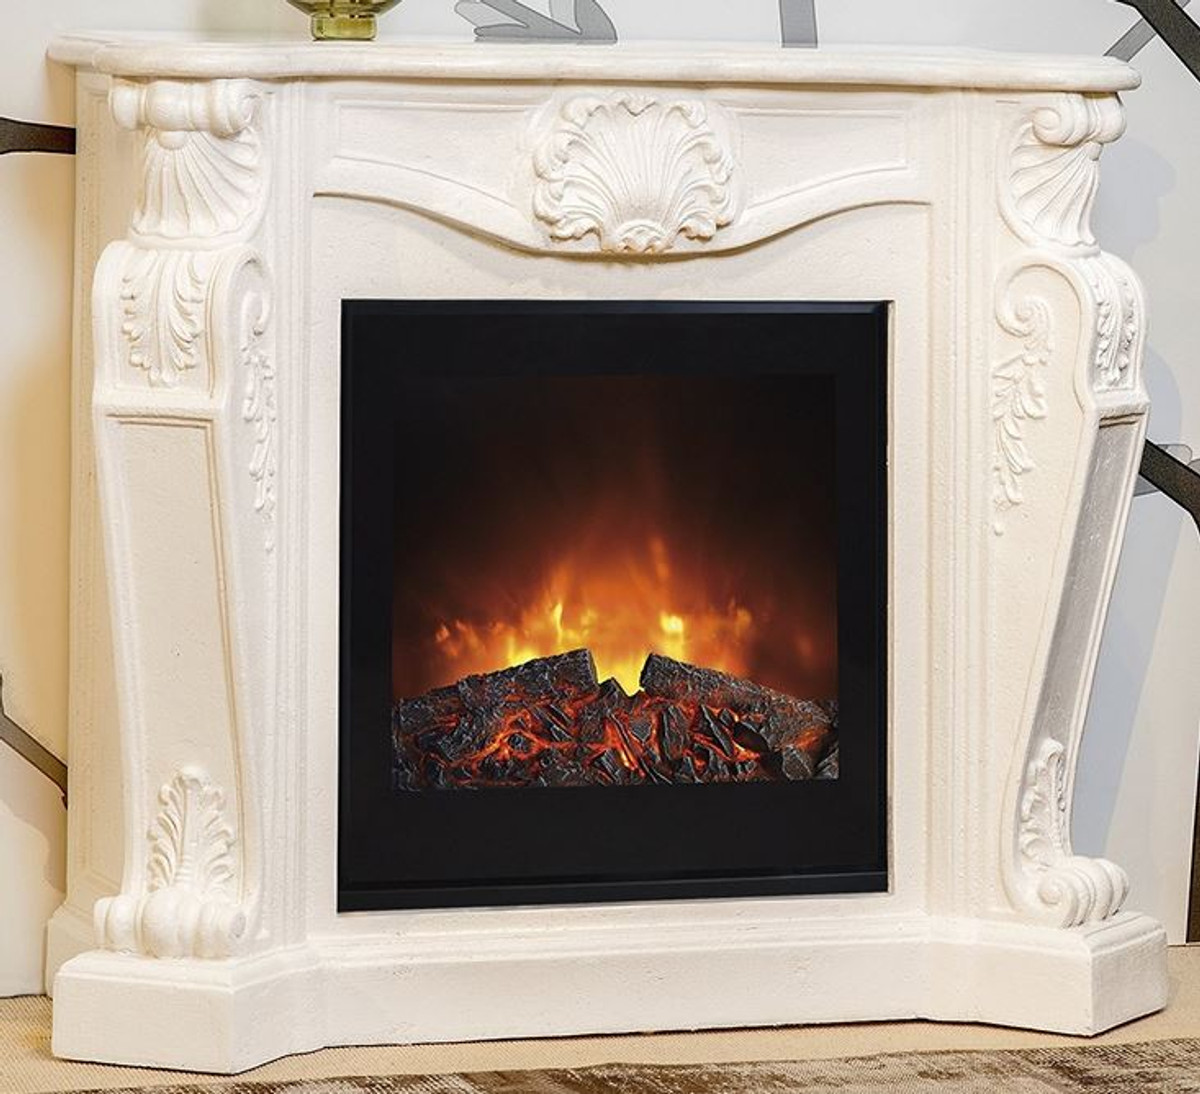 Casa Padrino Baroque Stone Fireplace Cream With Electric Insert